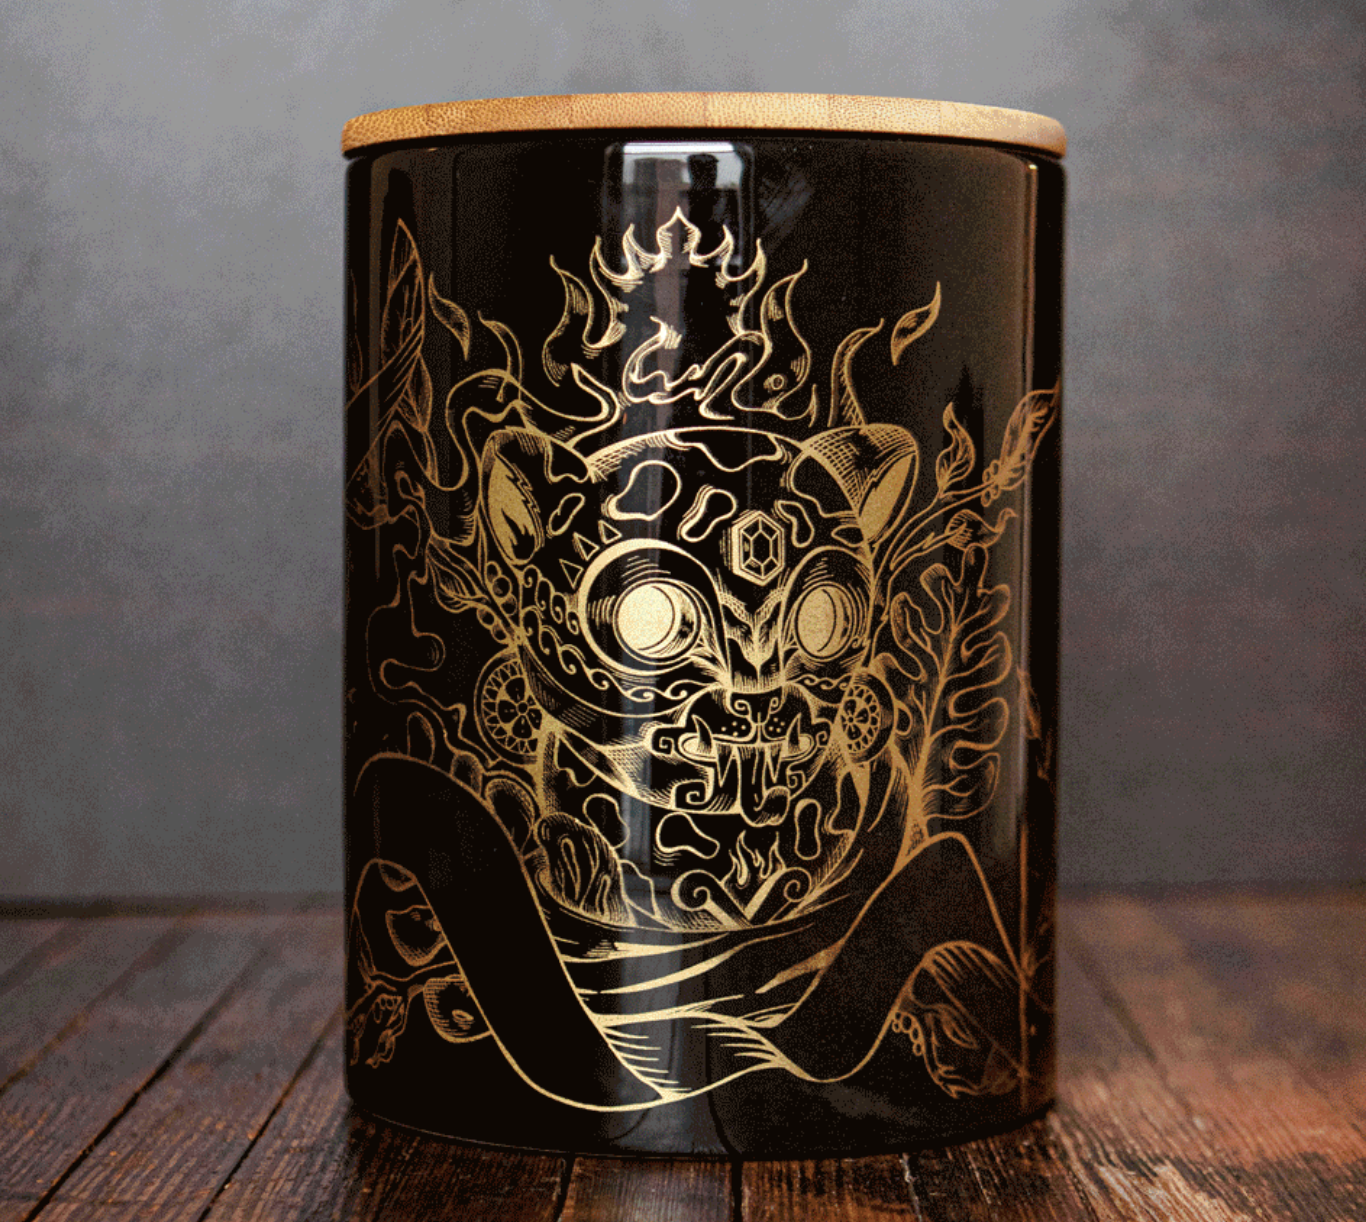 dark-matter-coffee-container-png.png